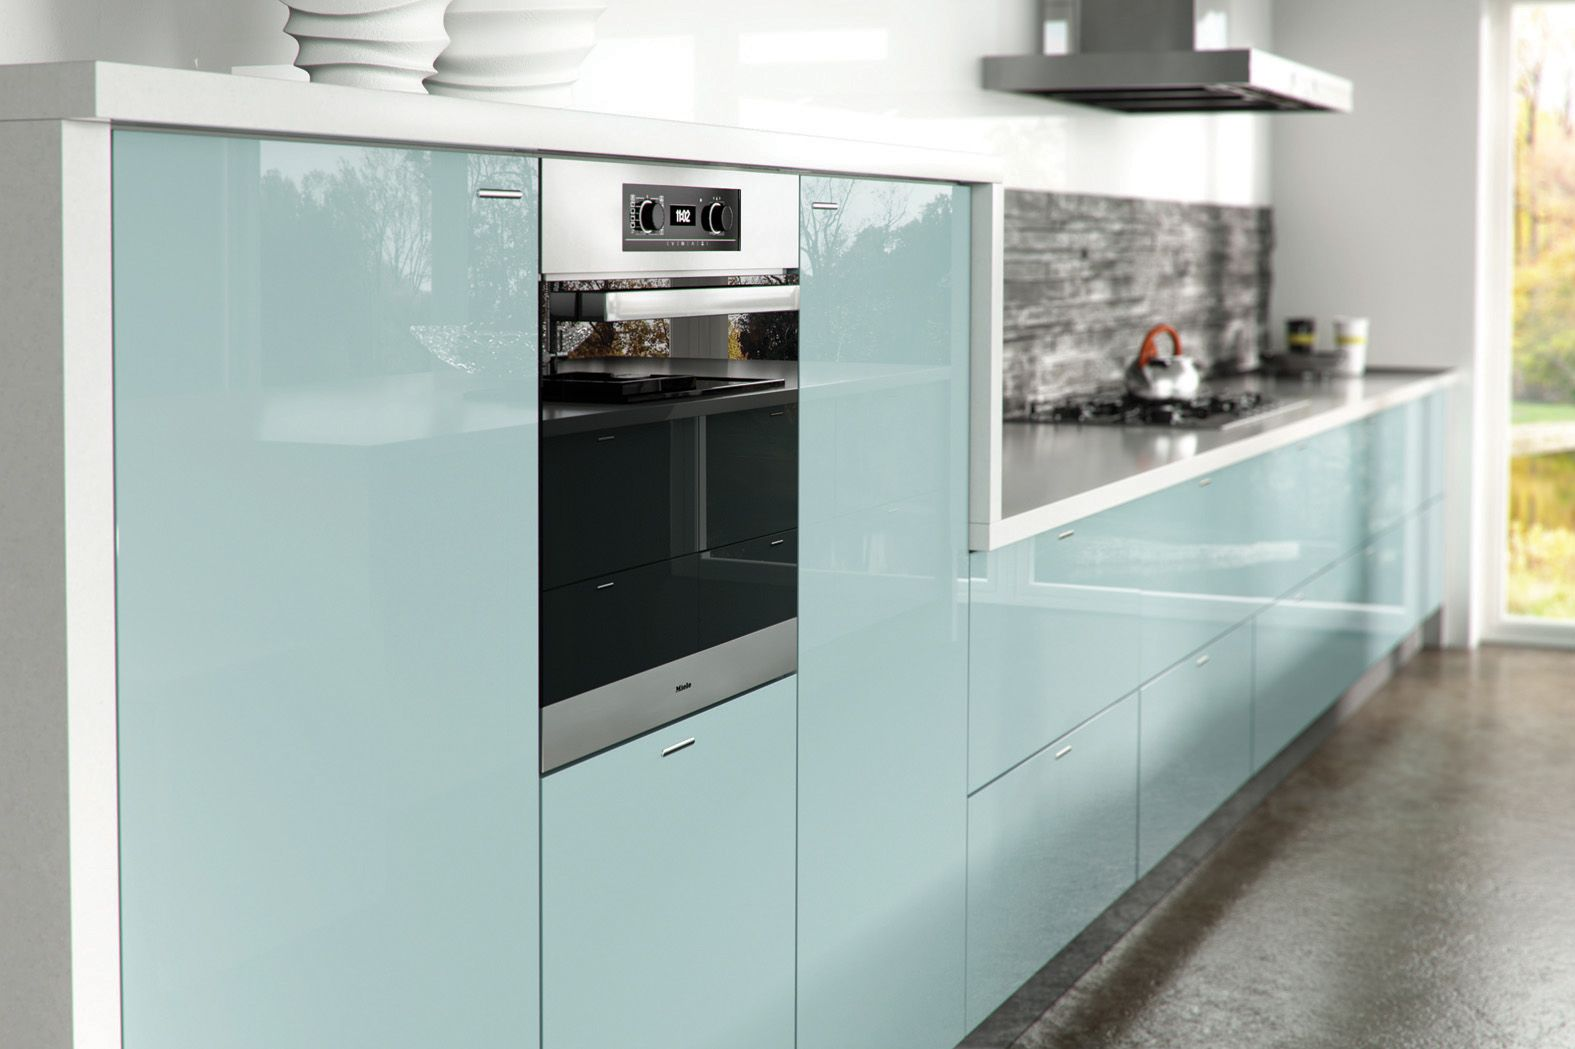 MetallicBlue Acrylic High Gloss Kitchen Doors | Great Kitchens ...